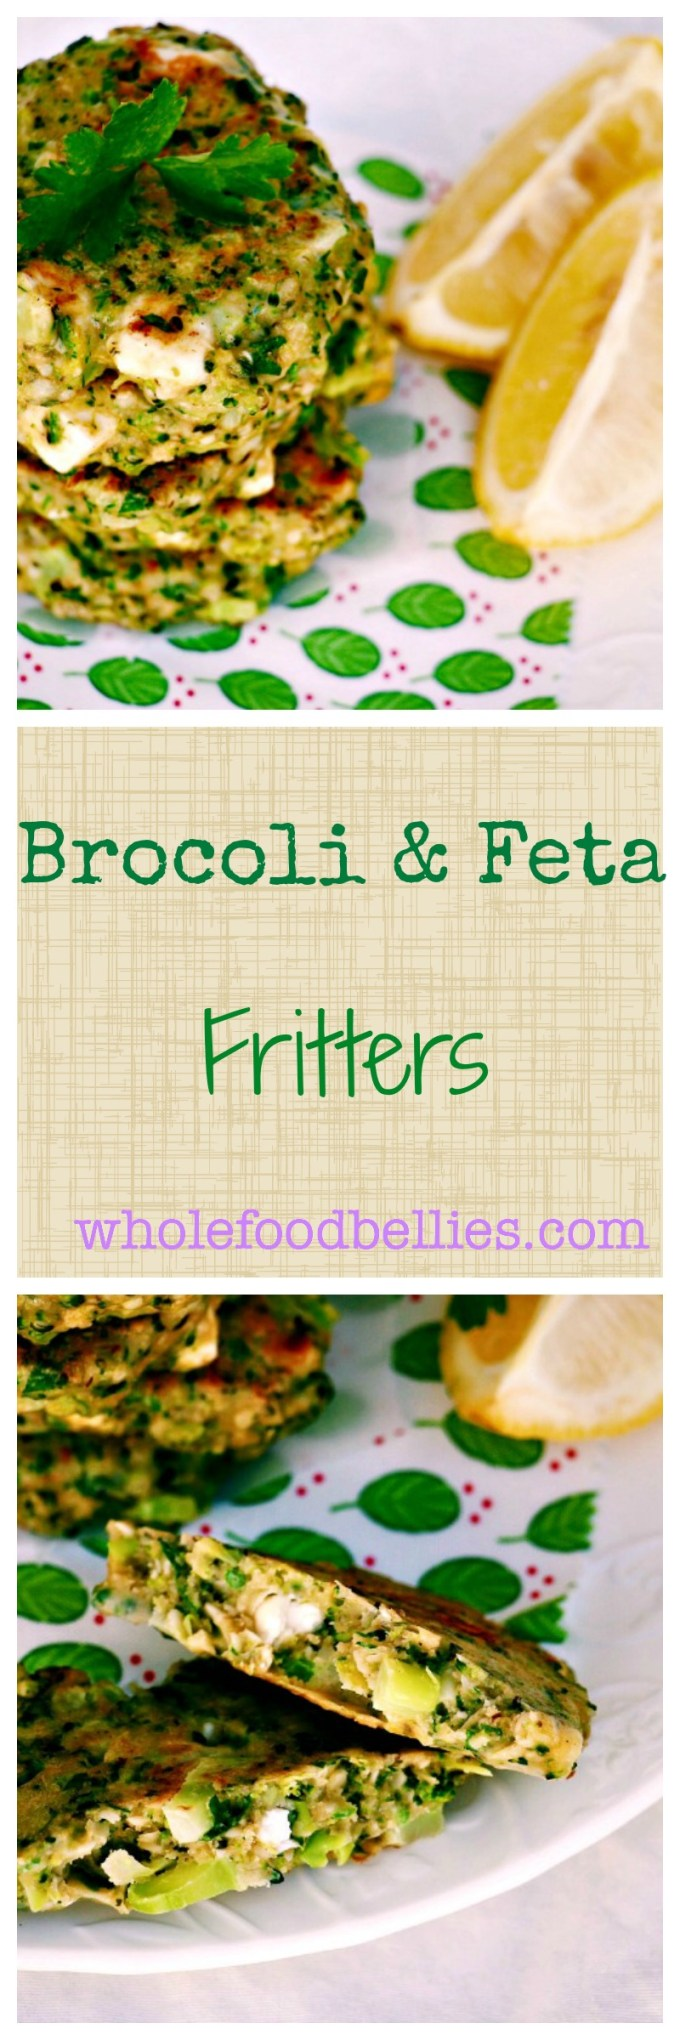 Broccoli and Feta Fritters are a great way to get some extra veg in during snack time. Kids and adults alike will love them